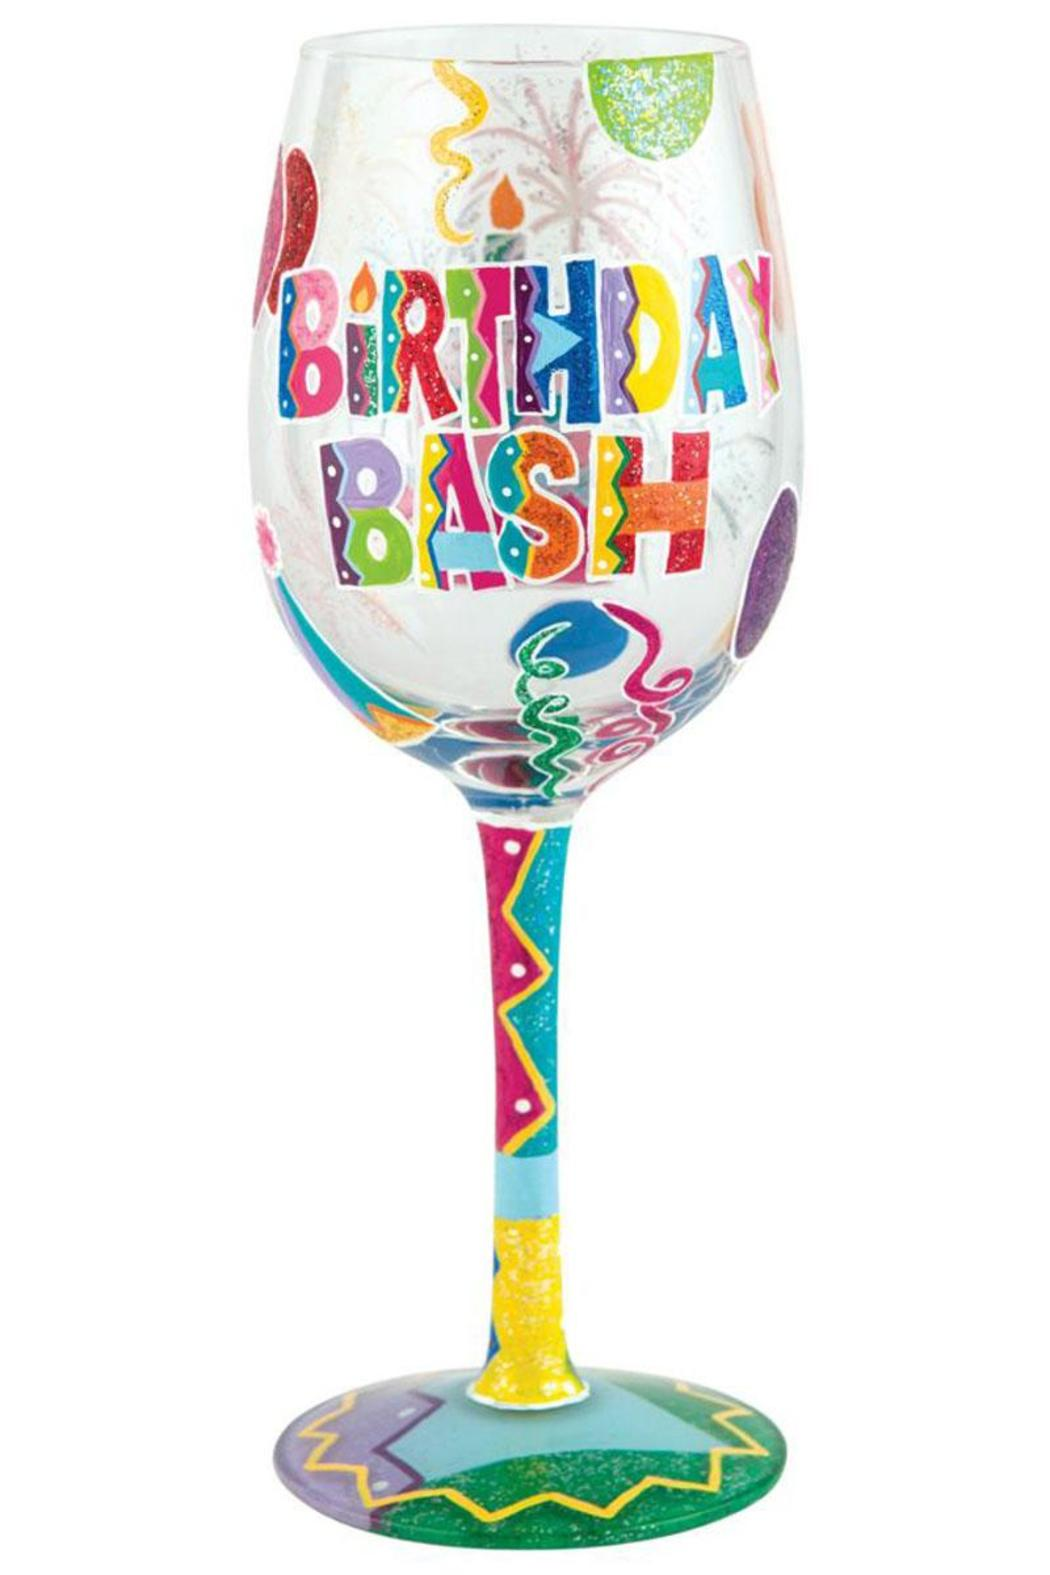 Lolita birthday bash wine glass from alabama by jubilee for Happy color spray paint price